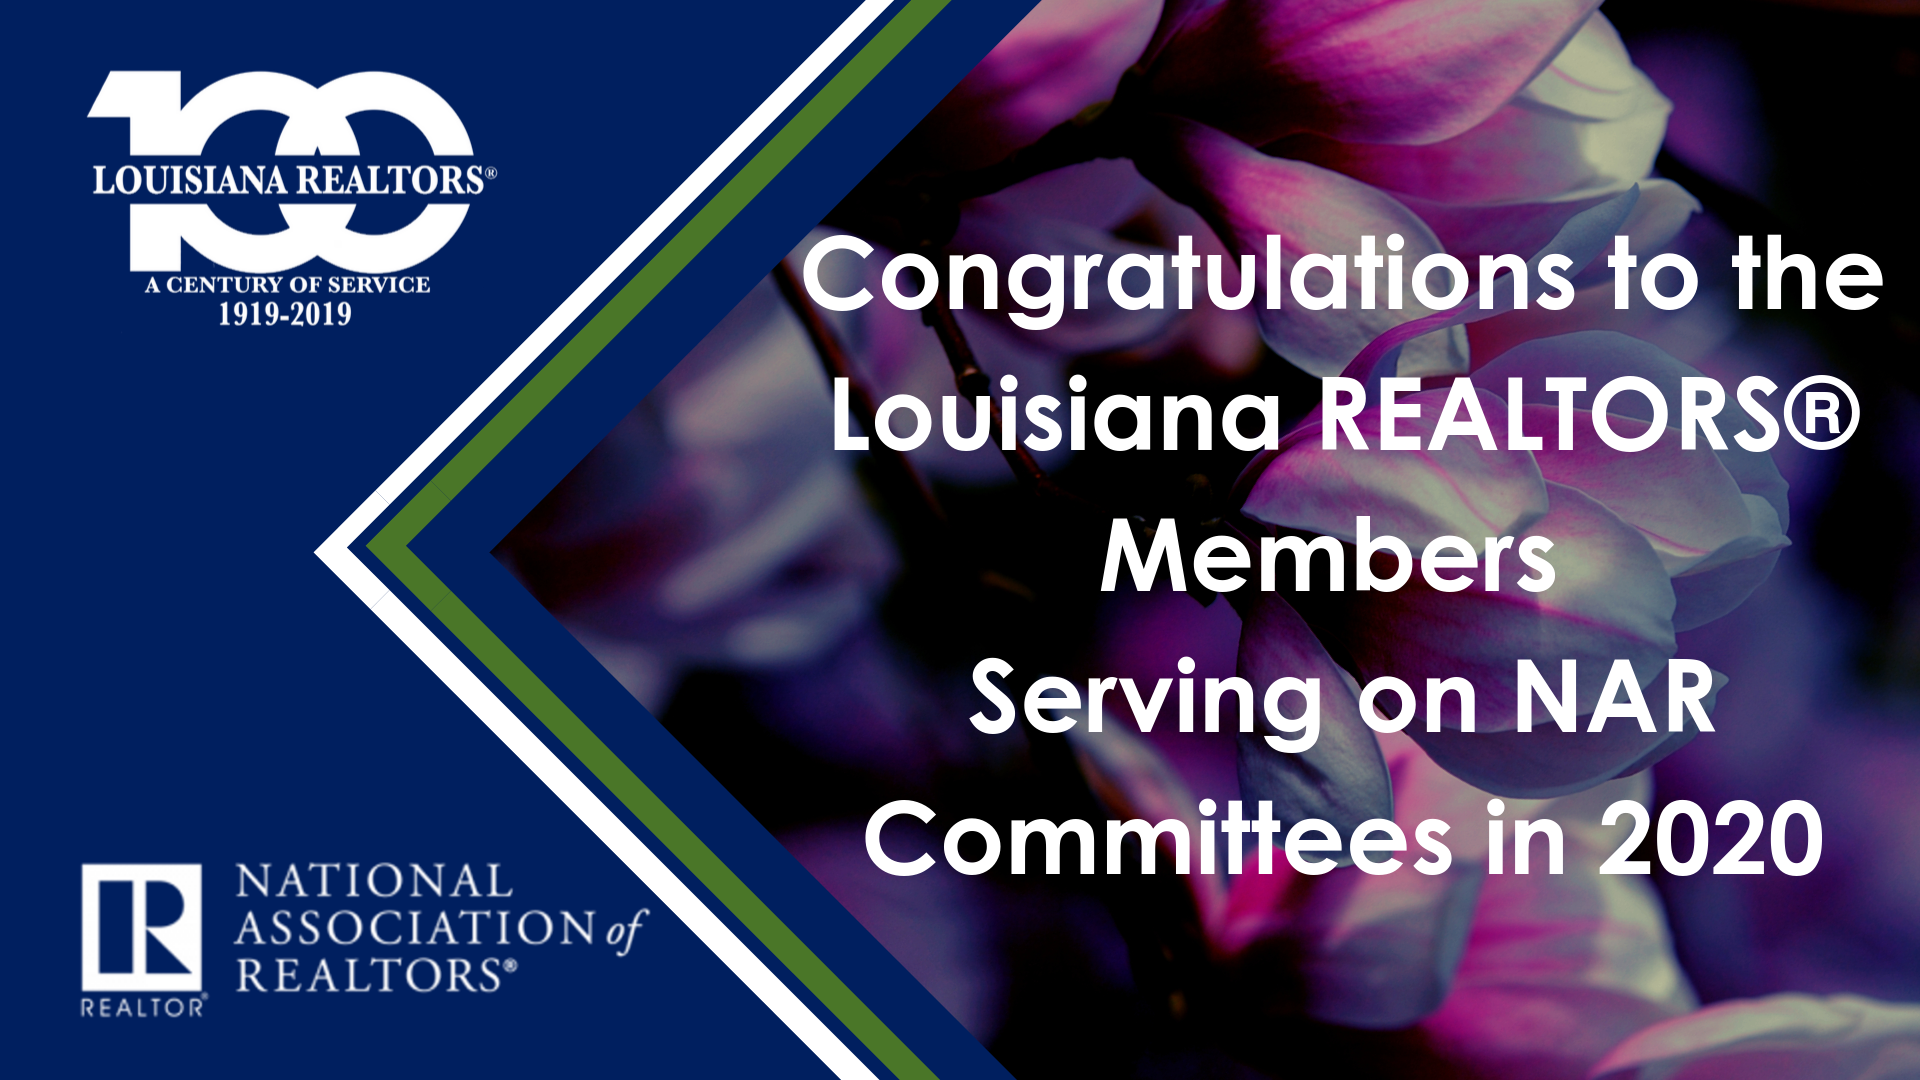 Congratulations Louisiana REALTORS® Members Serving on NAR Committees in 2020 (1).png